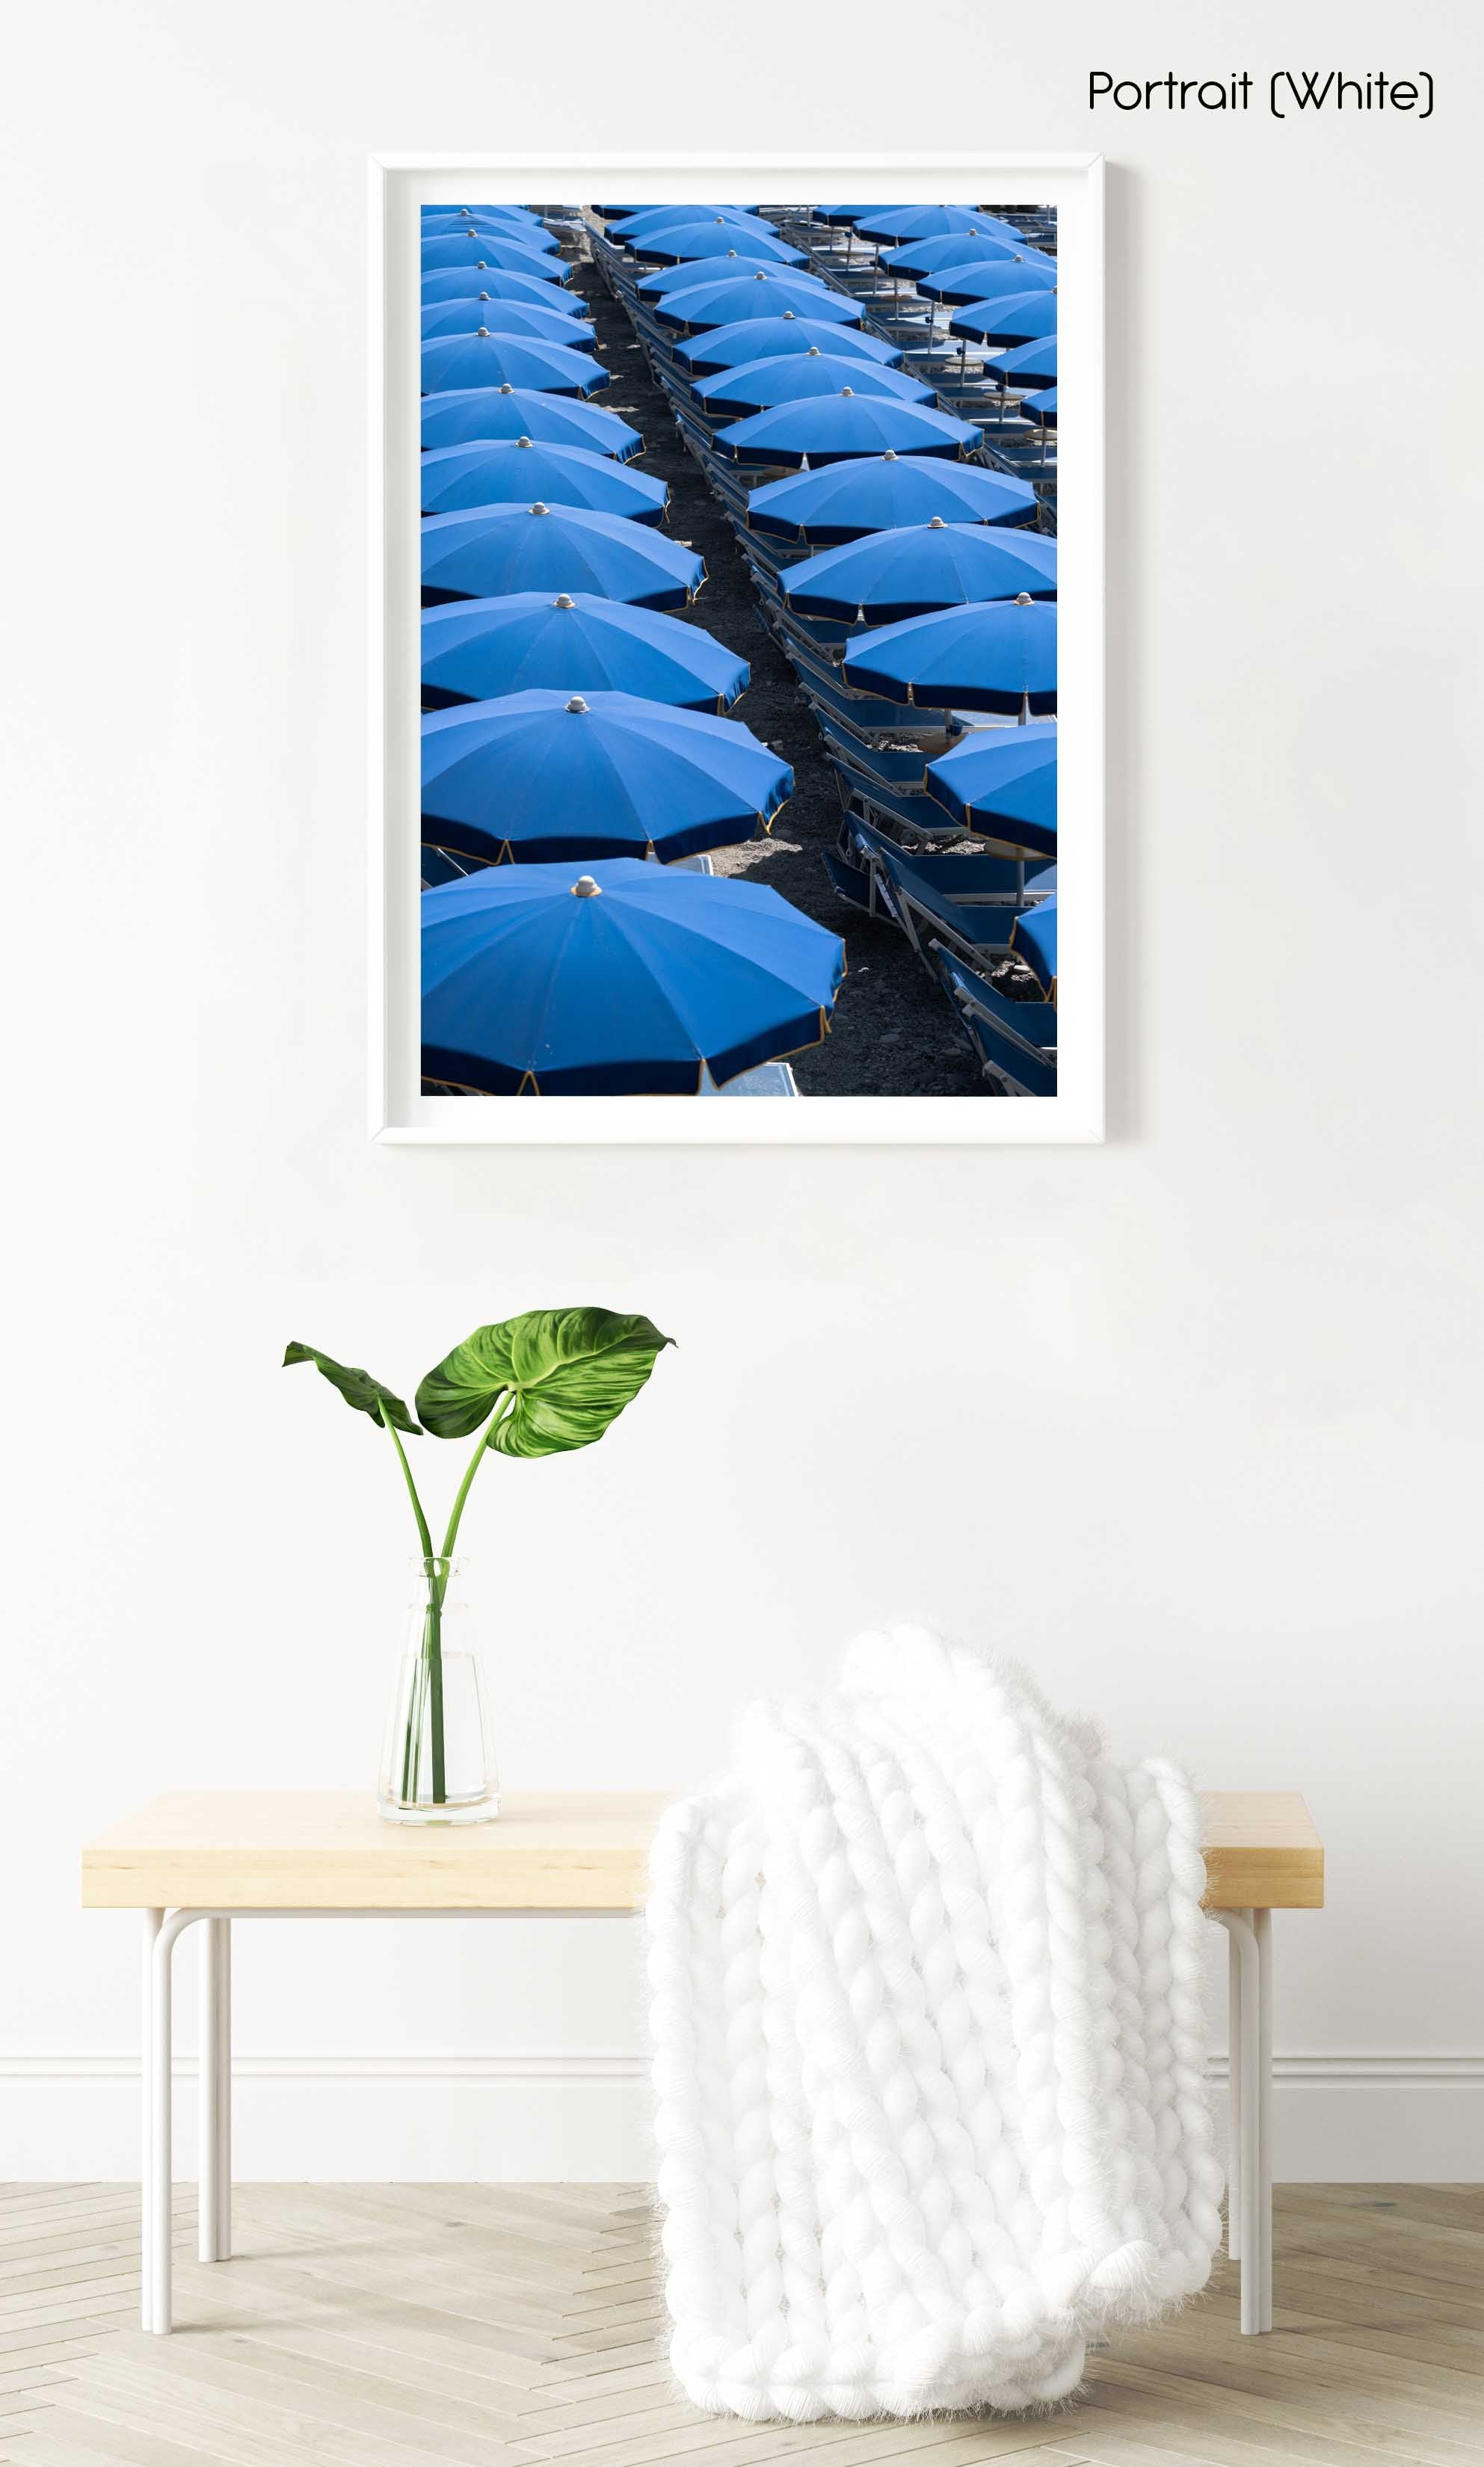 Blue umbrellas and beach chairs lined up in Italy in a white fine art frame